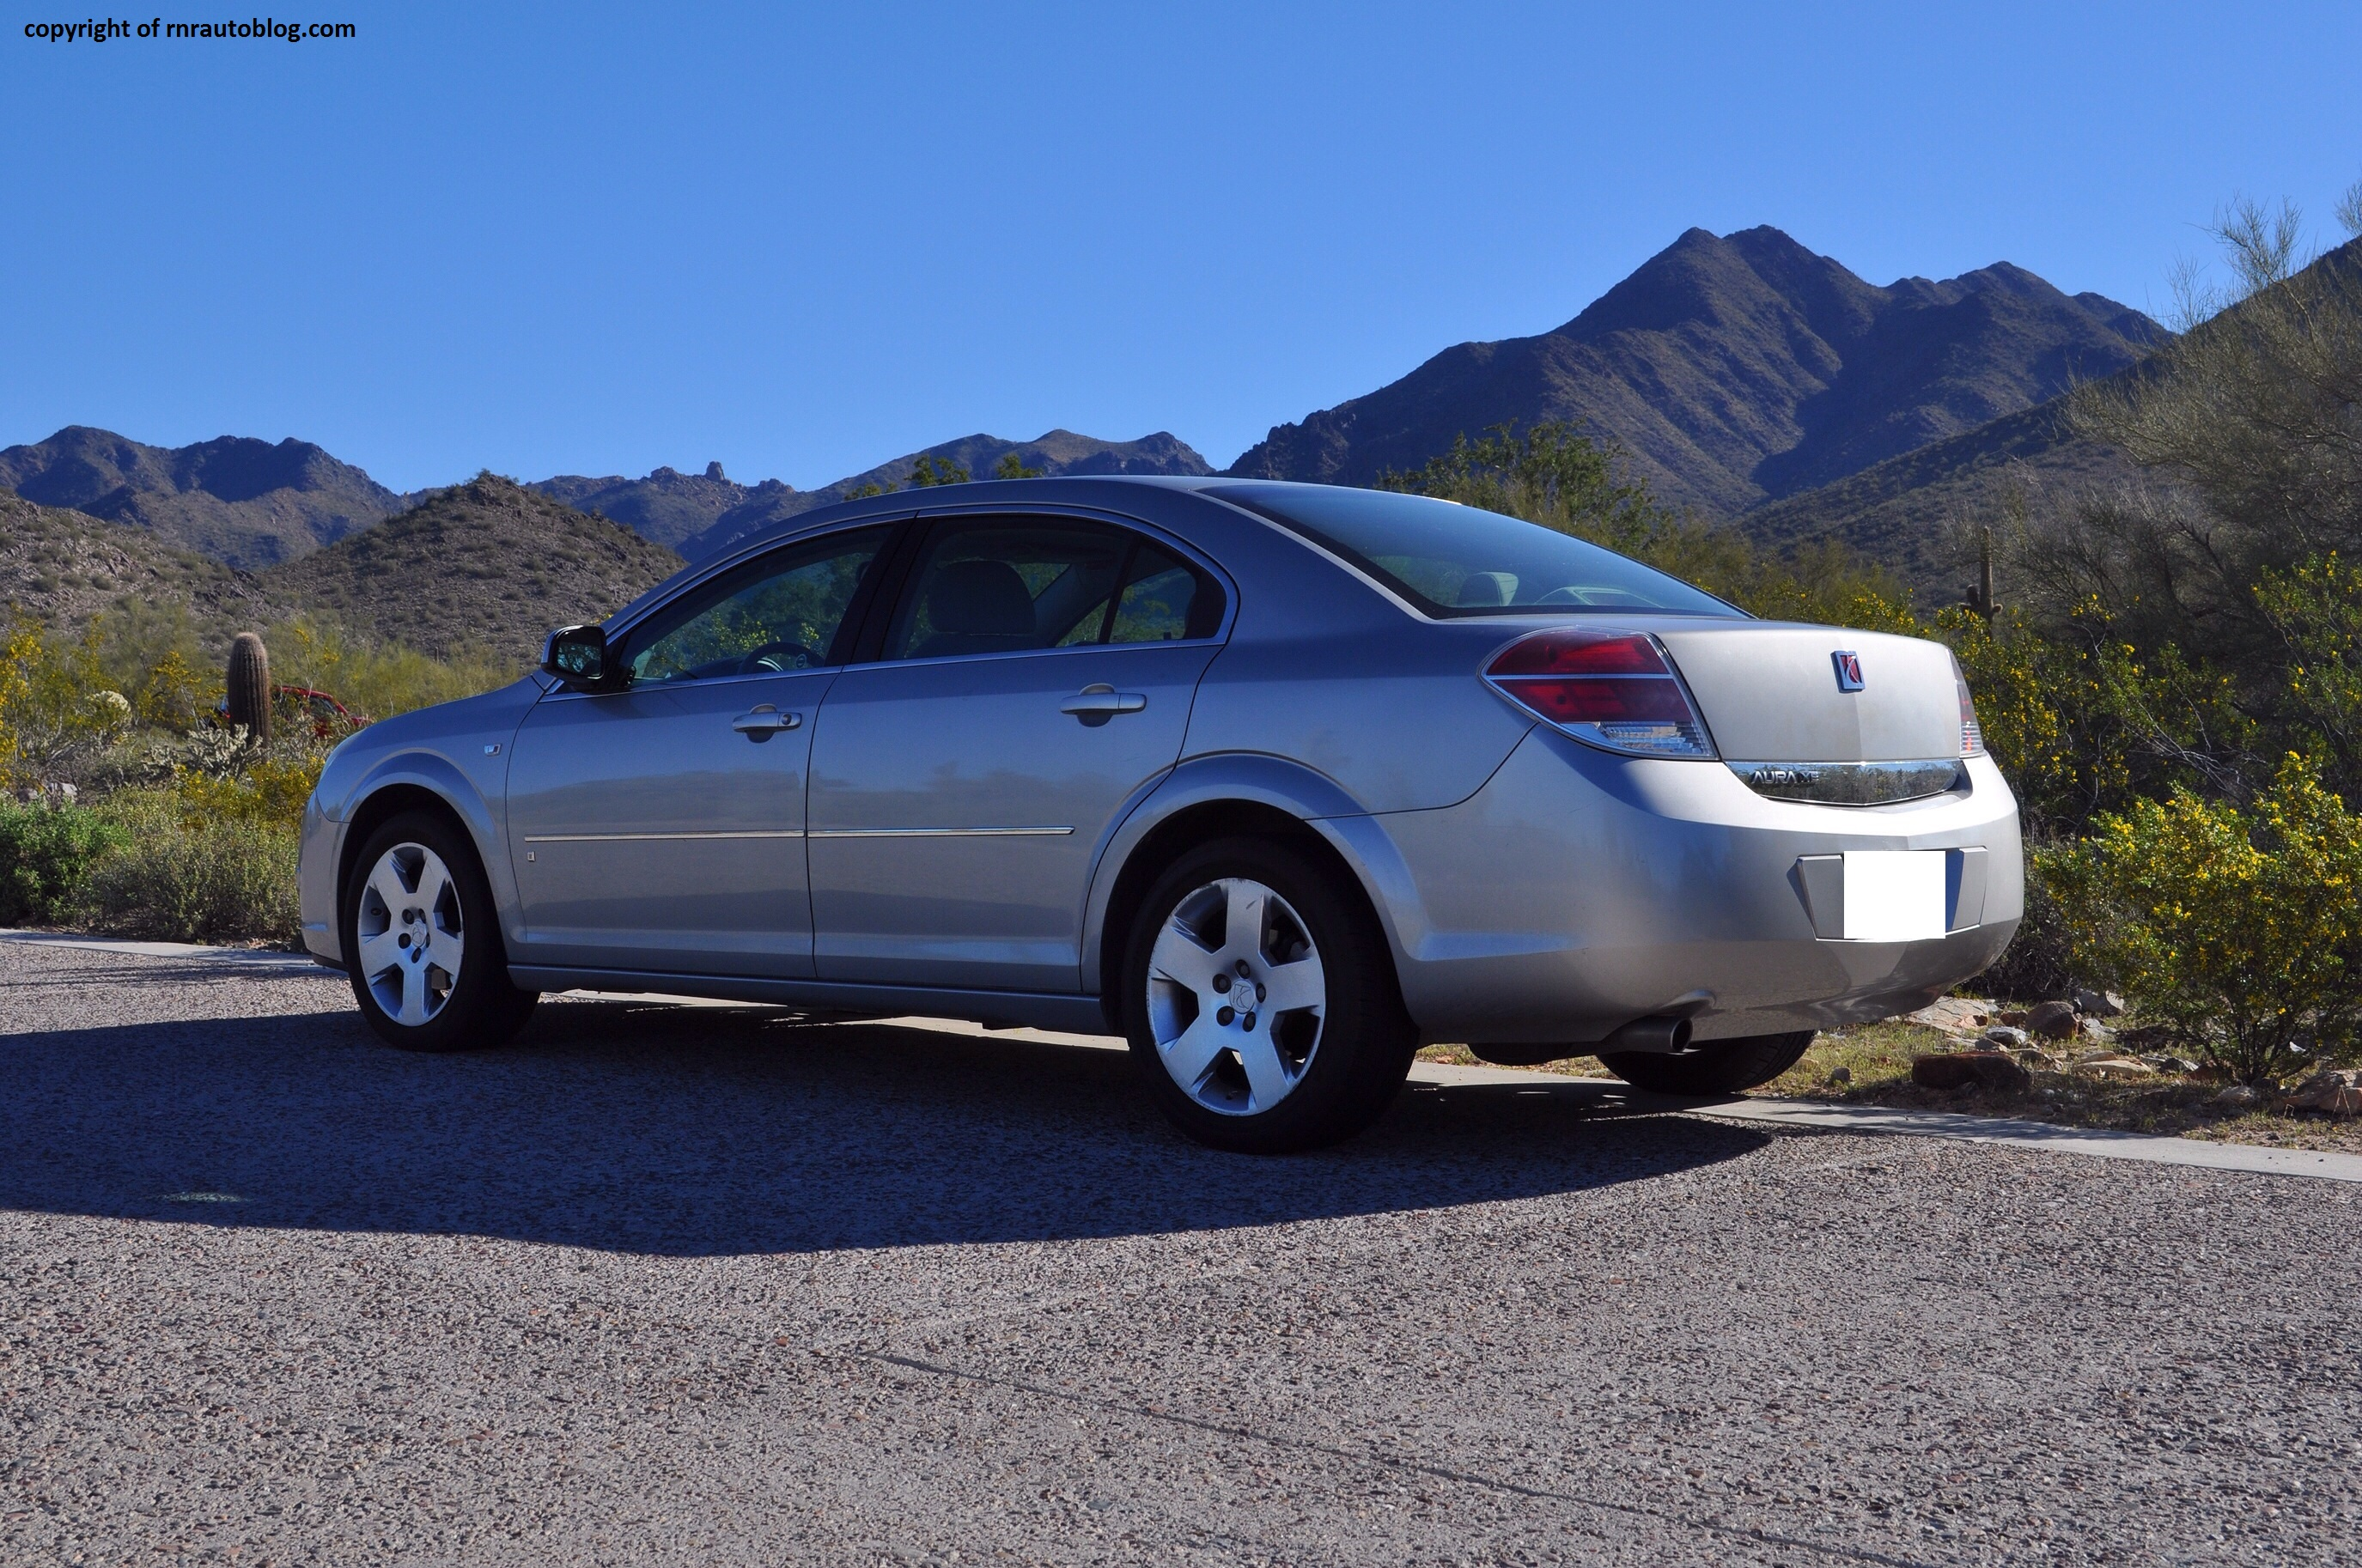 2007 saturn aura xe review